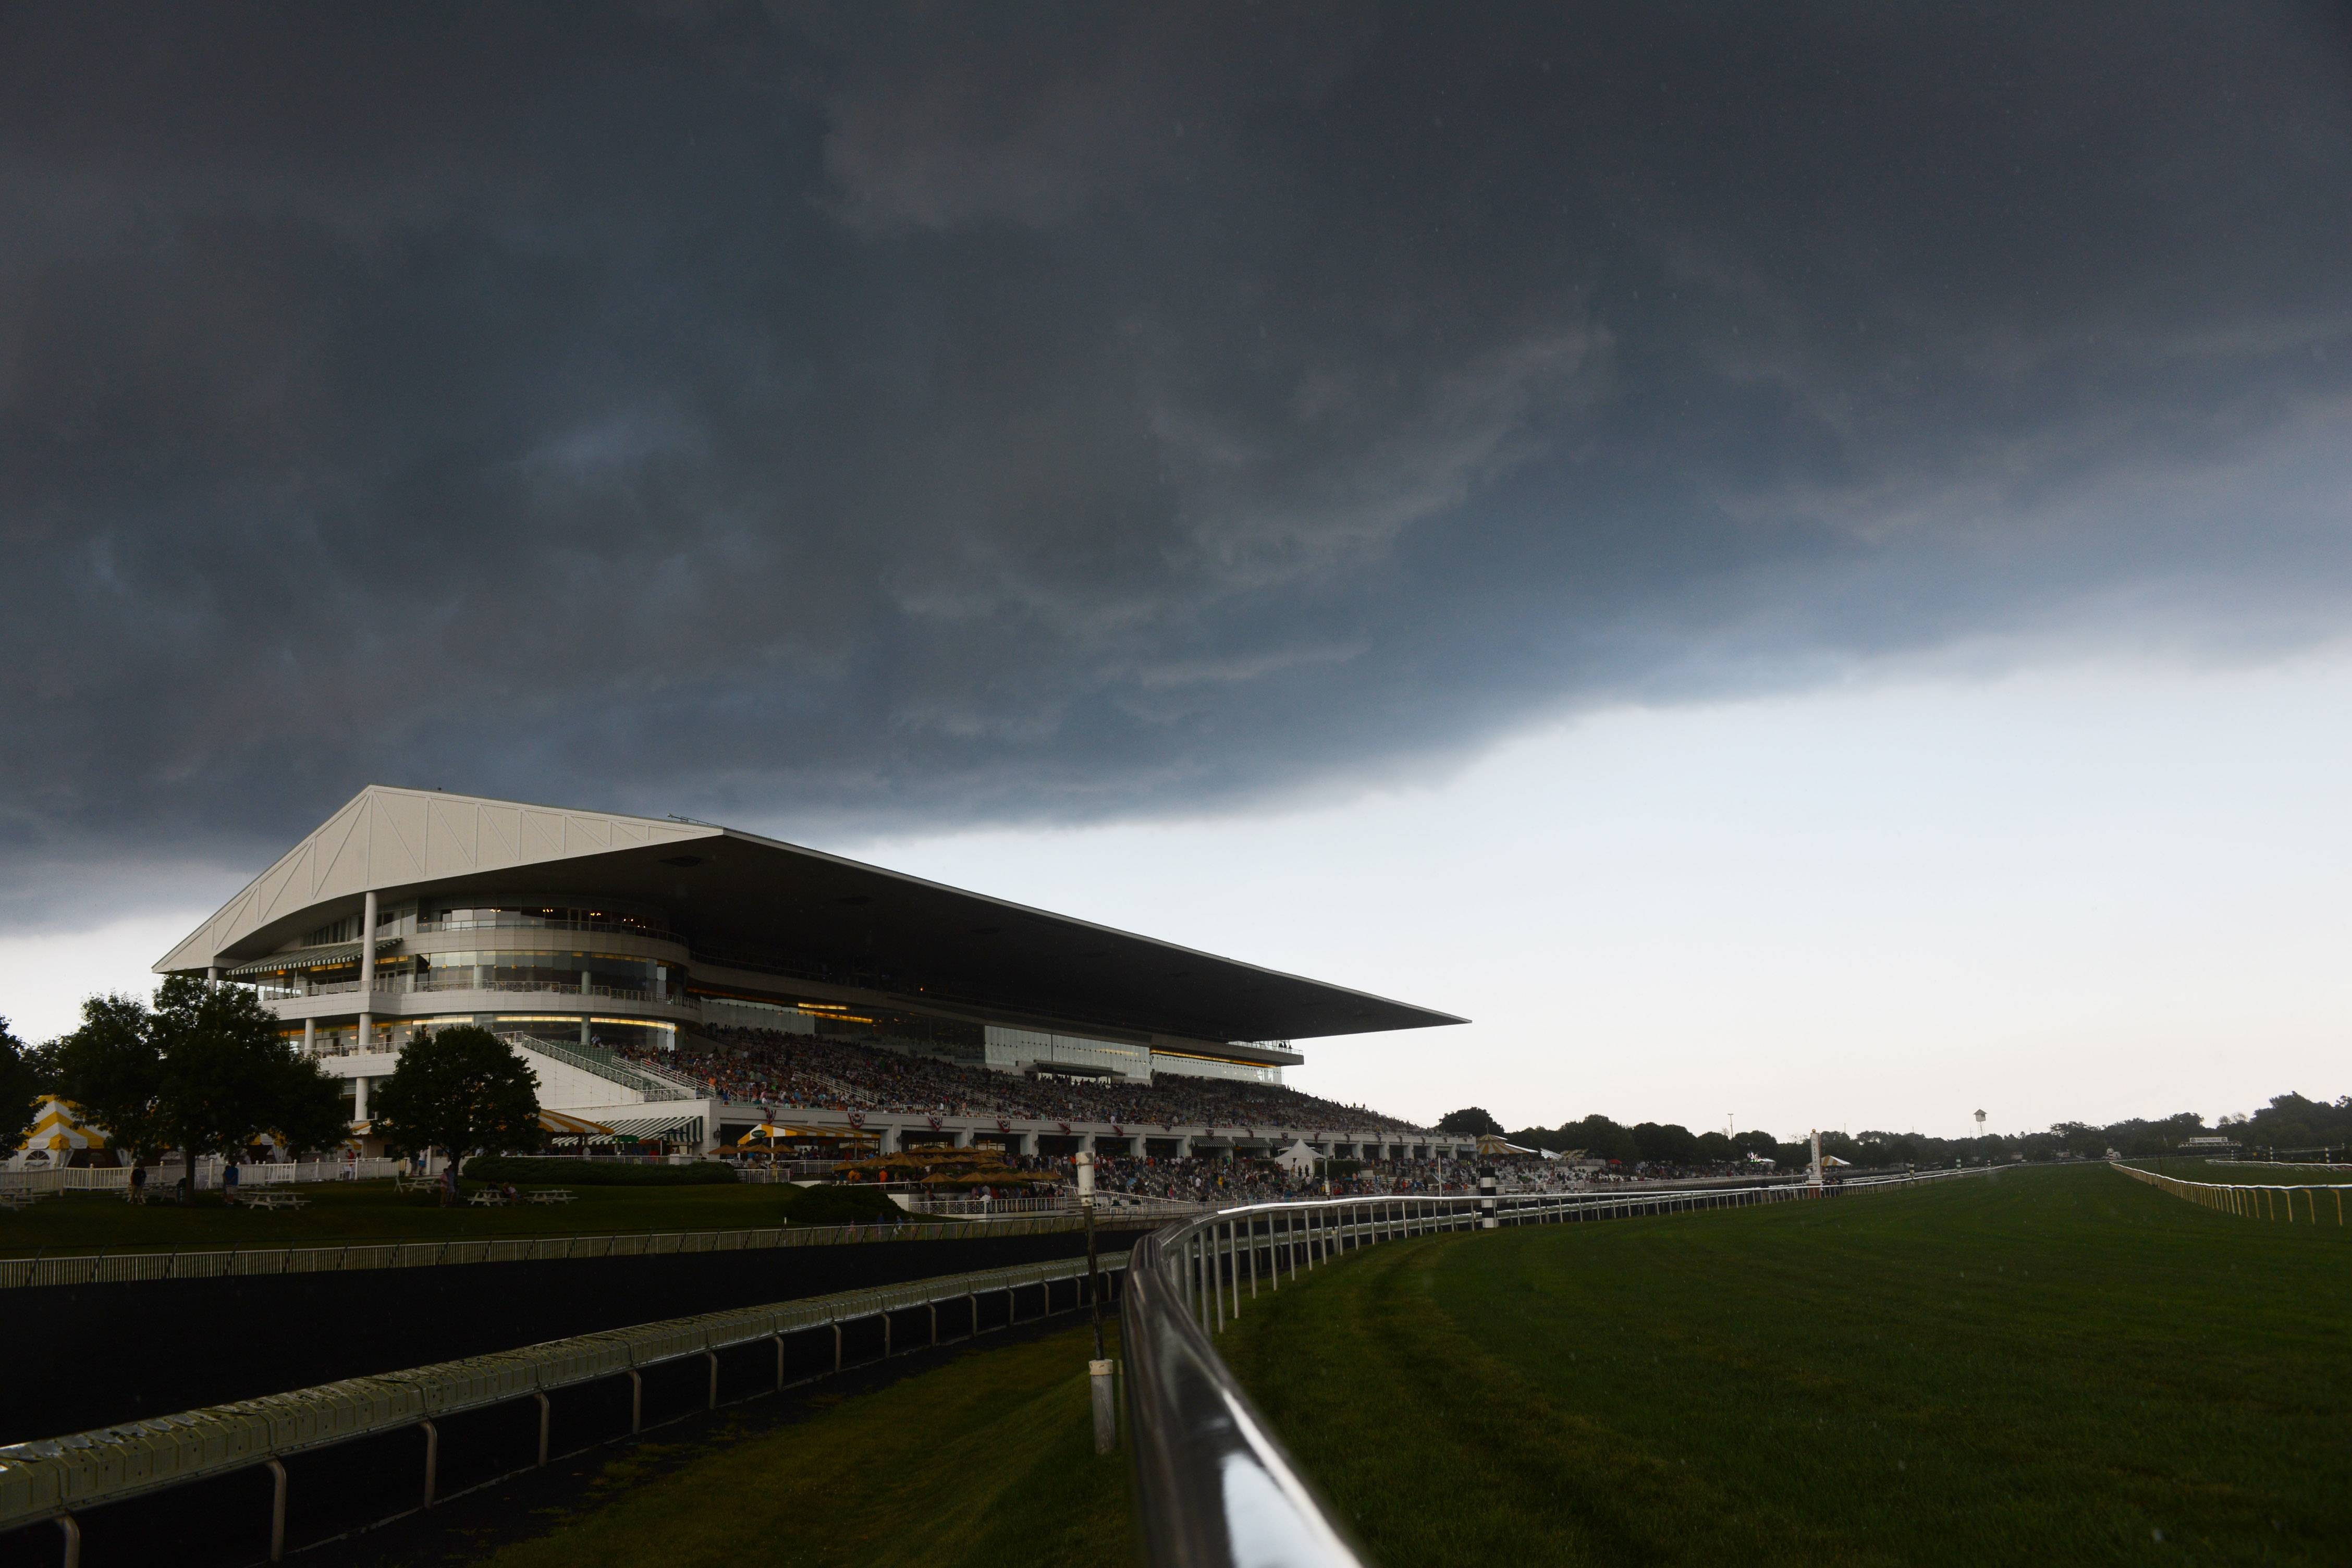 A storm cloud moves over the grandstand before a heavy rain shower Saturday during Arlington International Festival of Racing.